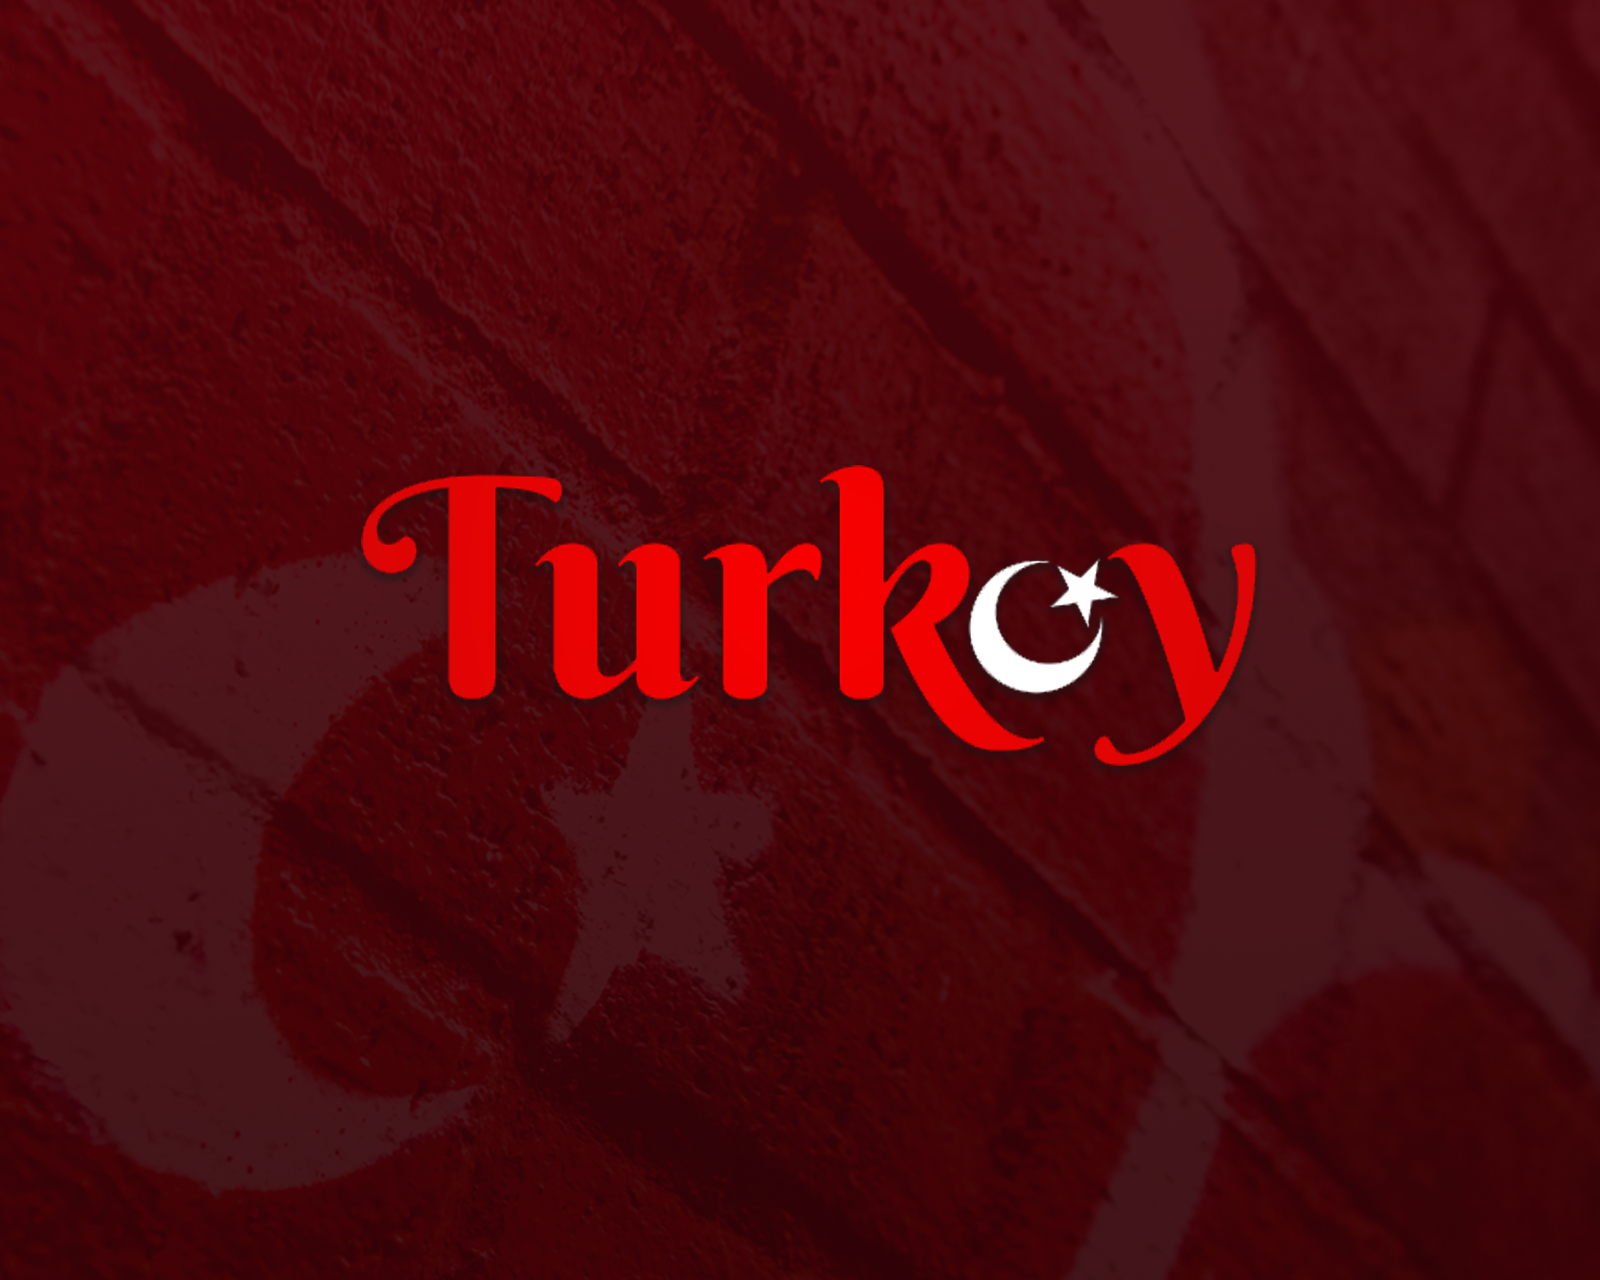 Turkey.com brand name